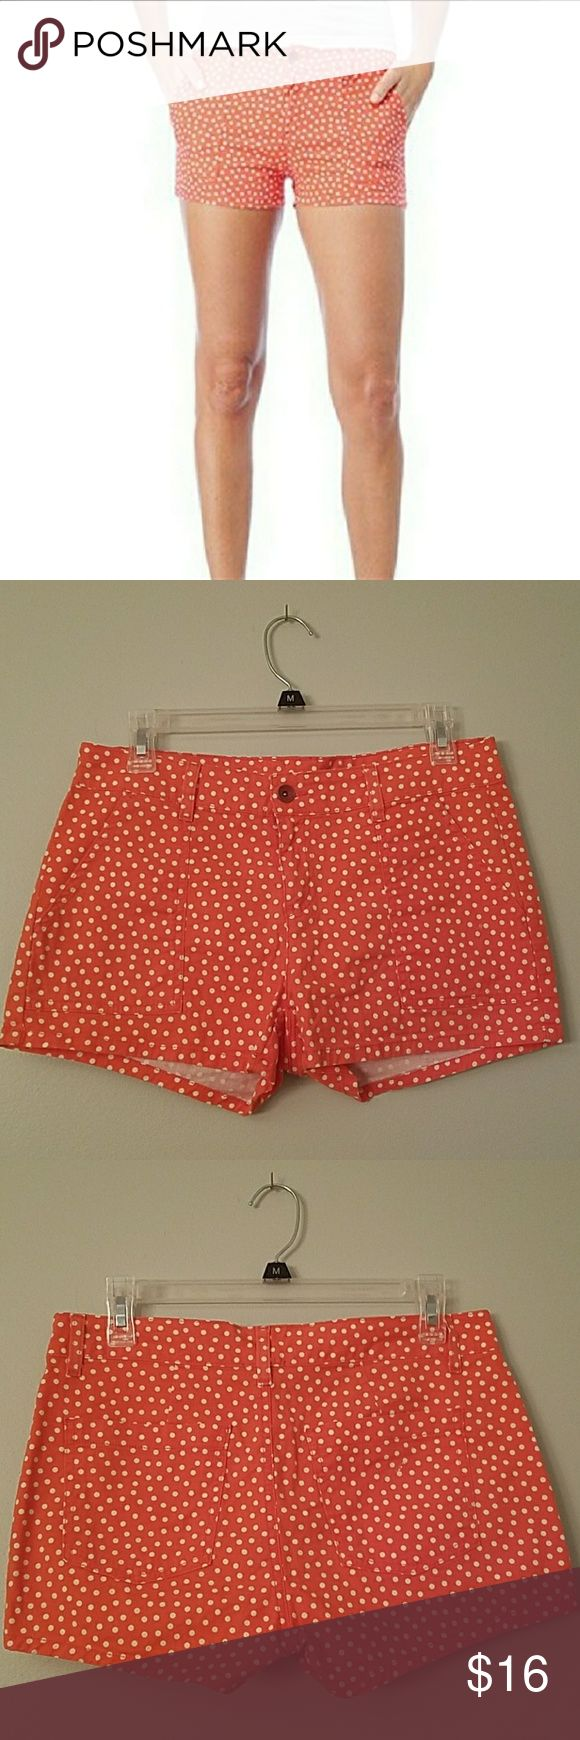 """☉SALE☉ Splendid Coral Polka-dot Shorts Gently used, Excellent condition  Women's Size 6 Length 10.5"""" Waist 32"""" Inseam 2.5"""" Clean smoke free home Splendid Shorts"""